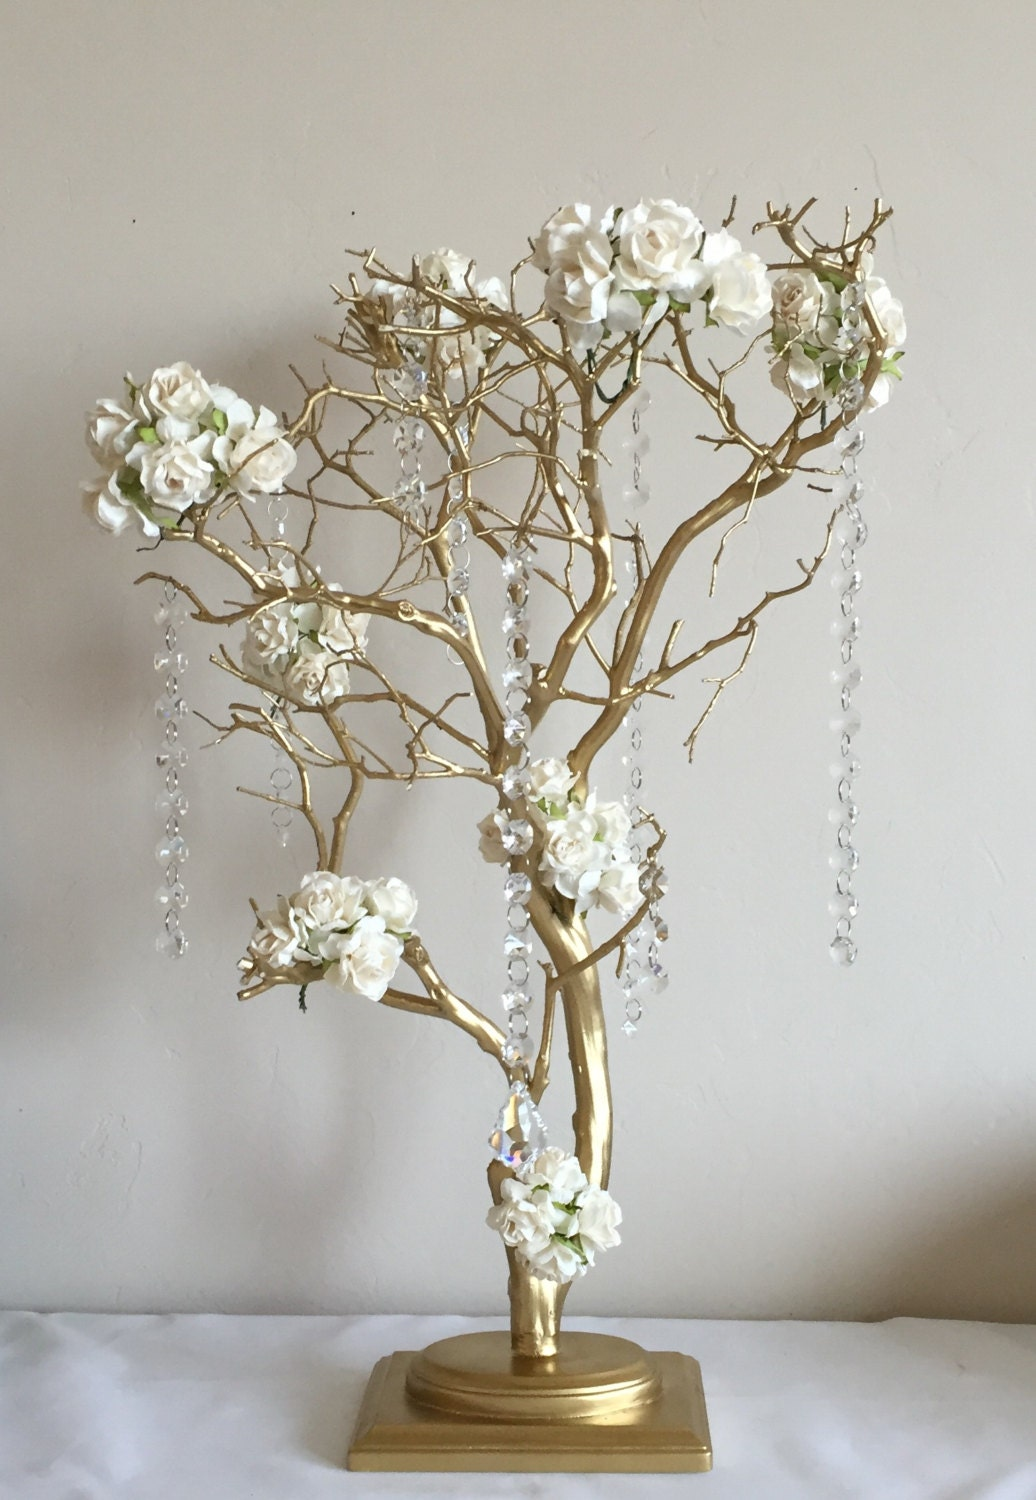 24 Gold Manzanita Tree Centerpiece Wedding Centerpiece